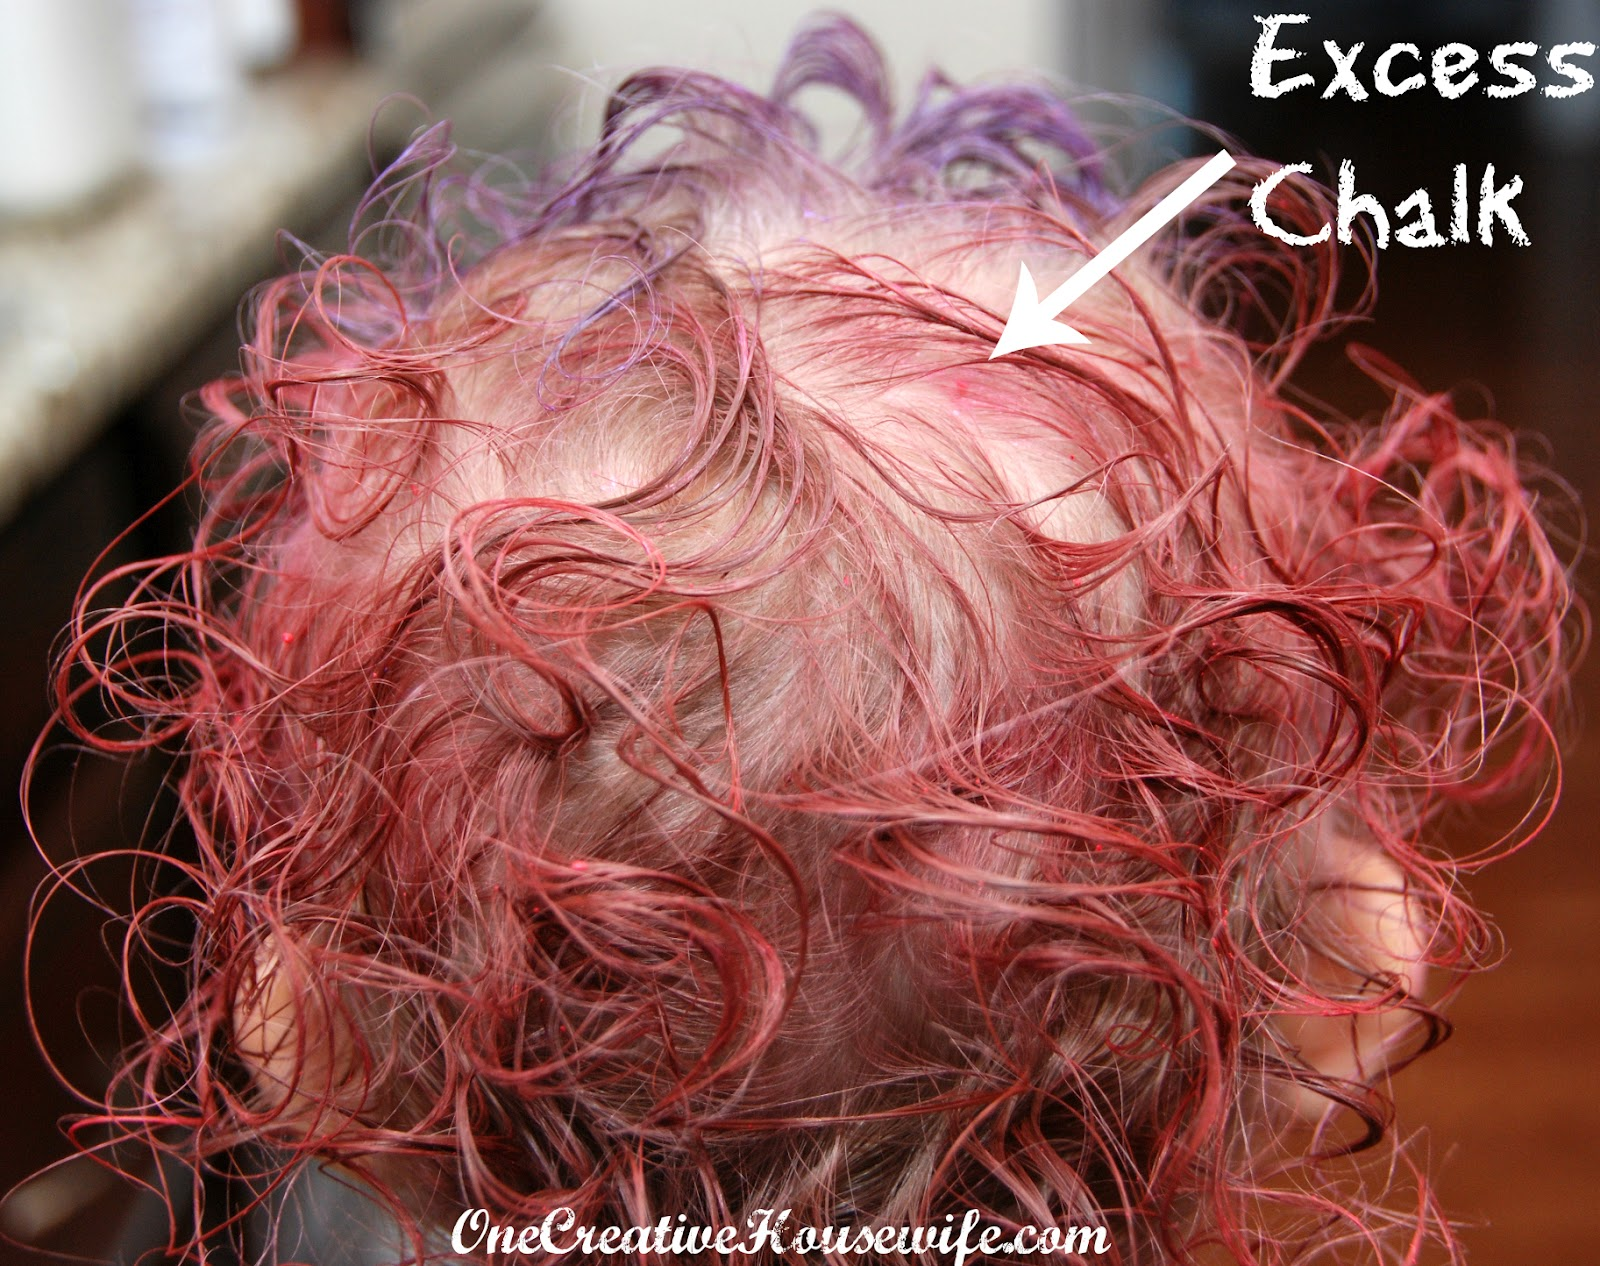 One creative housewife diy hair color monday september 17 2012 solutioingenieria Image collections